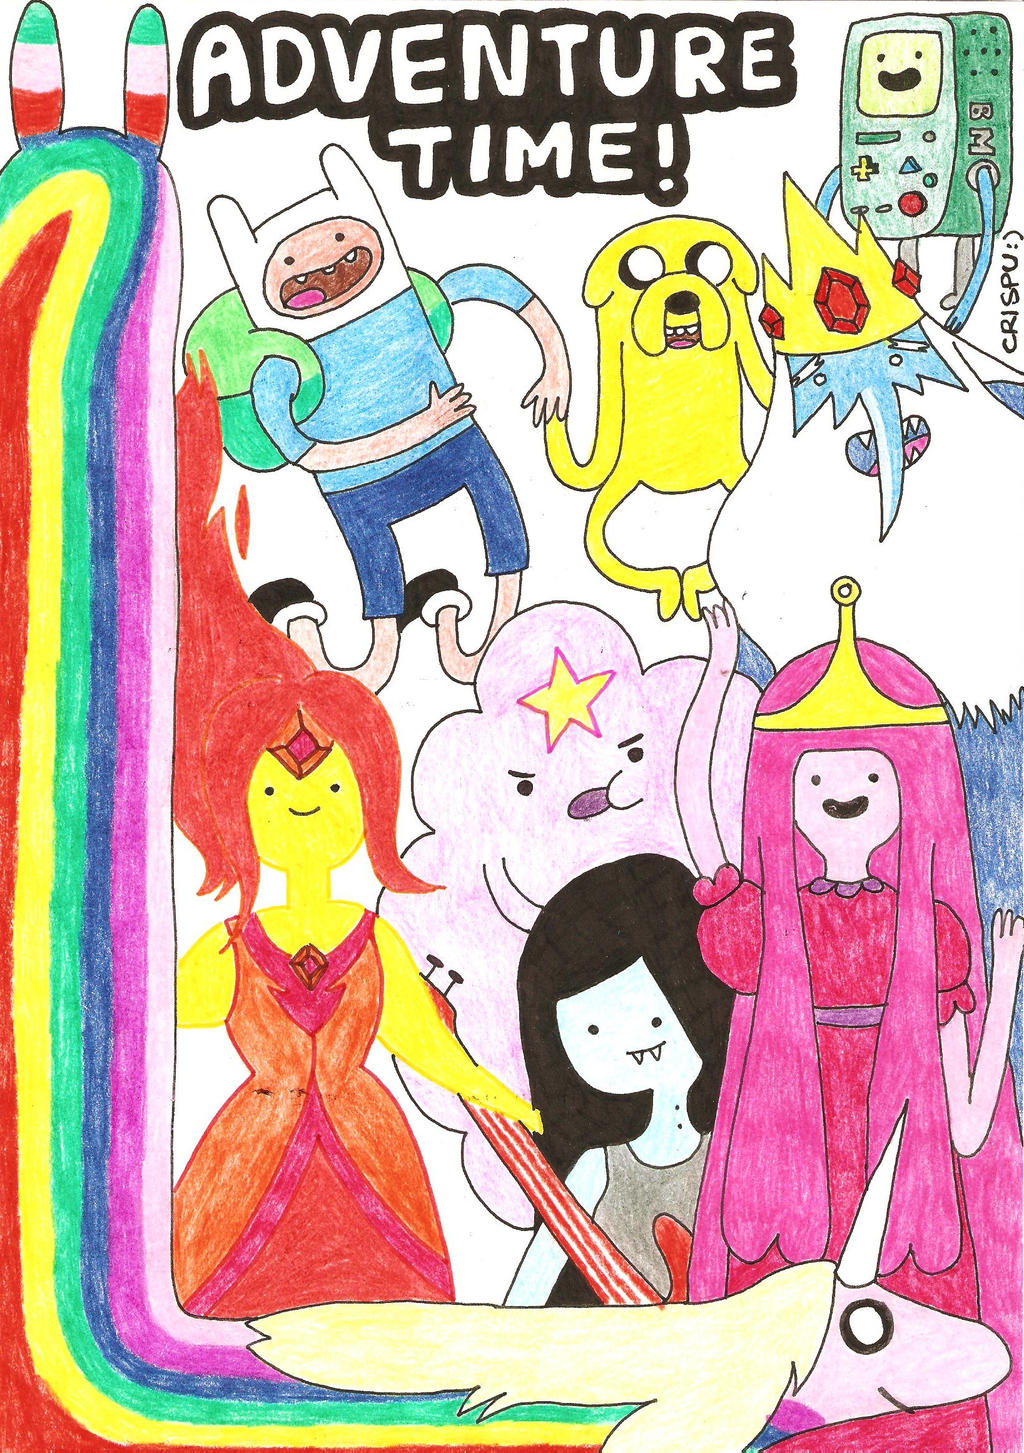 Adventure Time! - 2012 - 09 - 06 by sakuritachan92